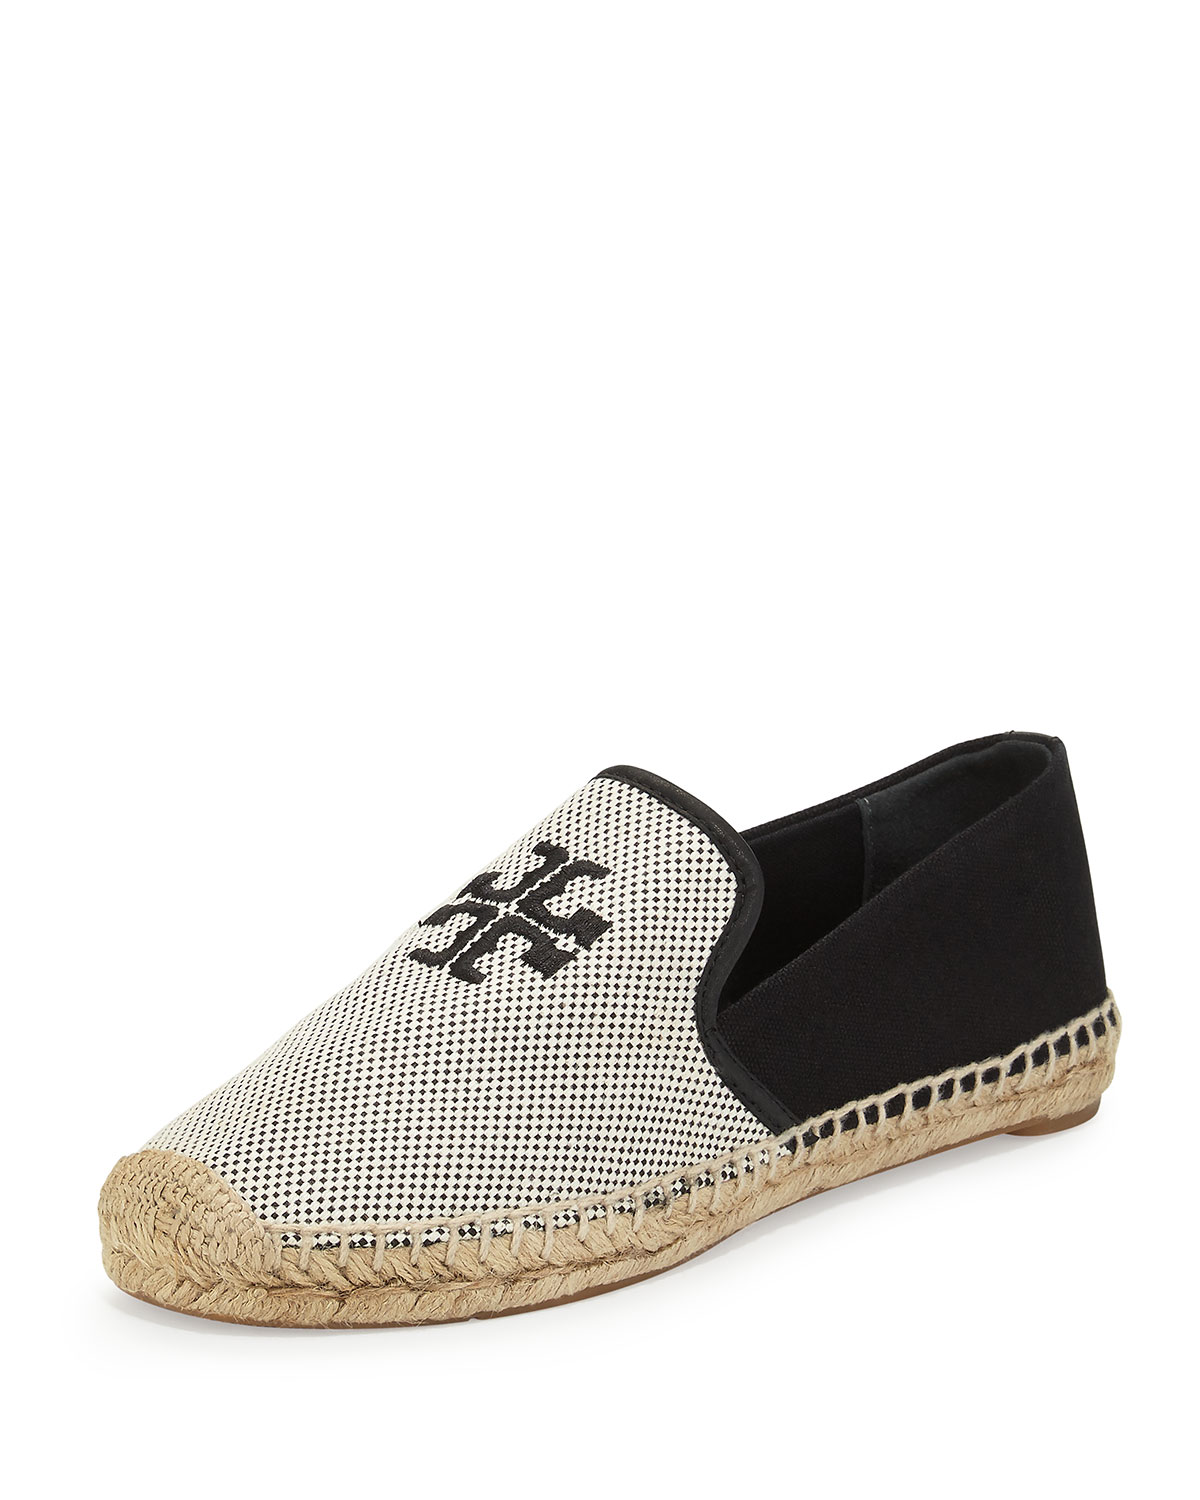 Tory Burch Vargas Canvas Leather Espadrille Shoes